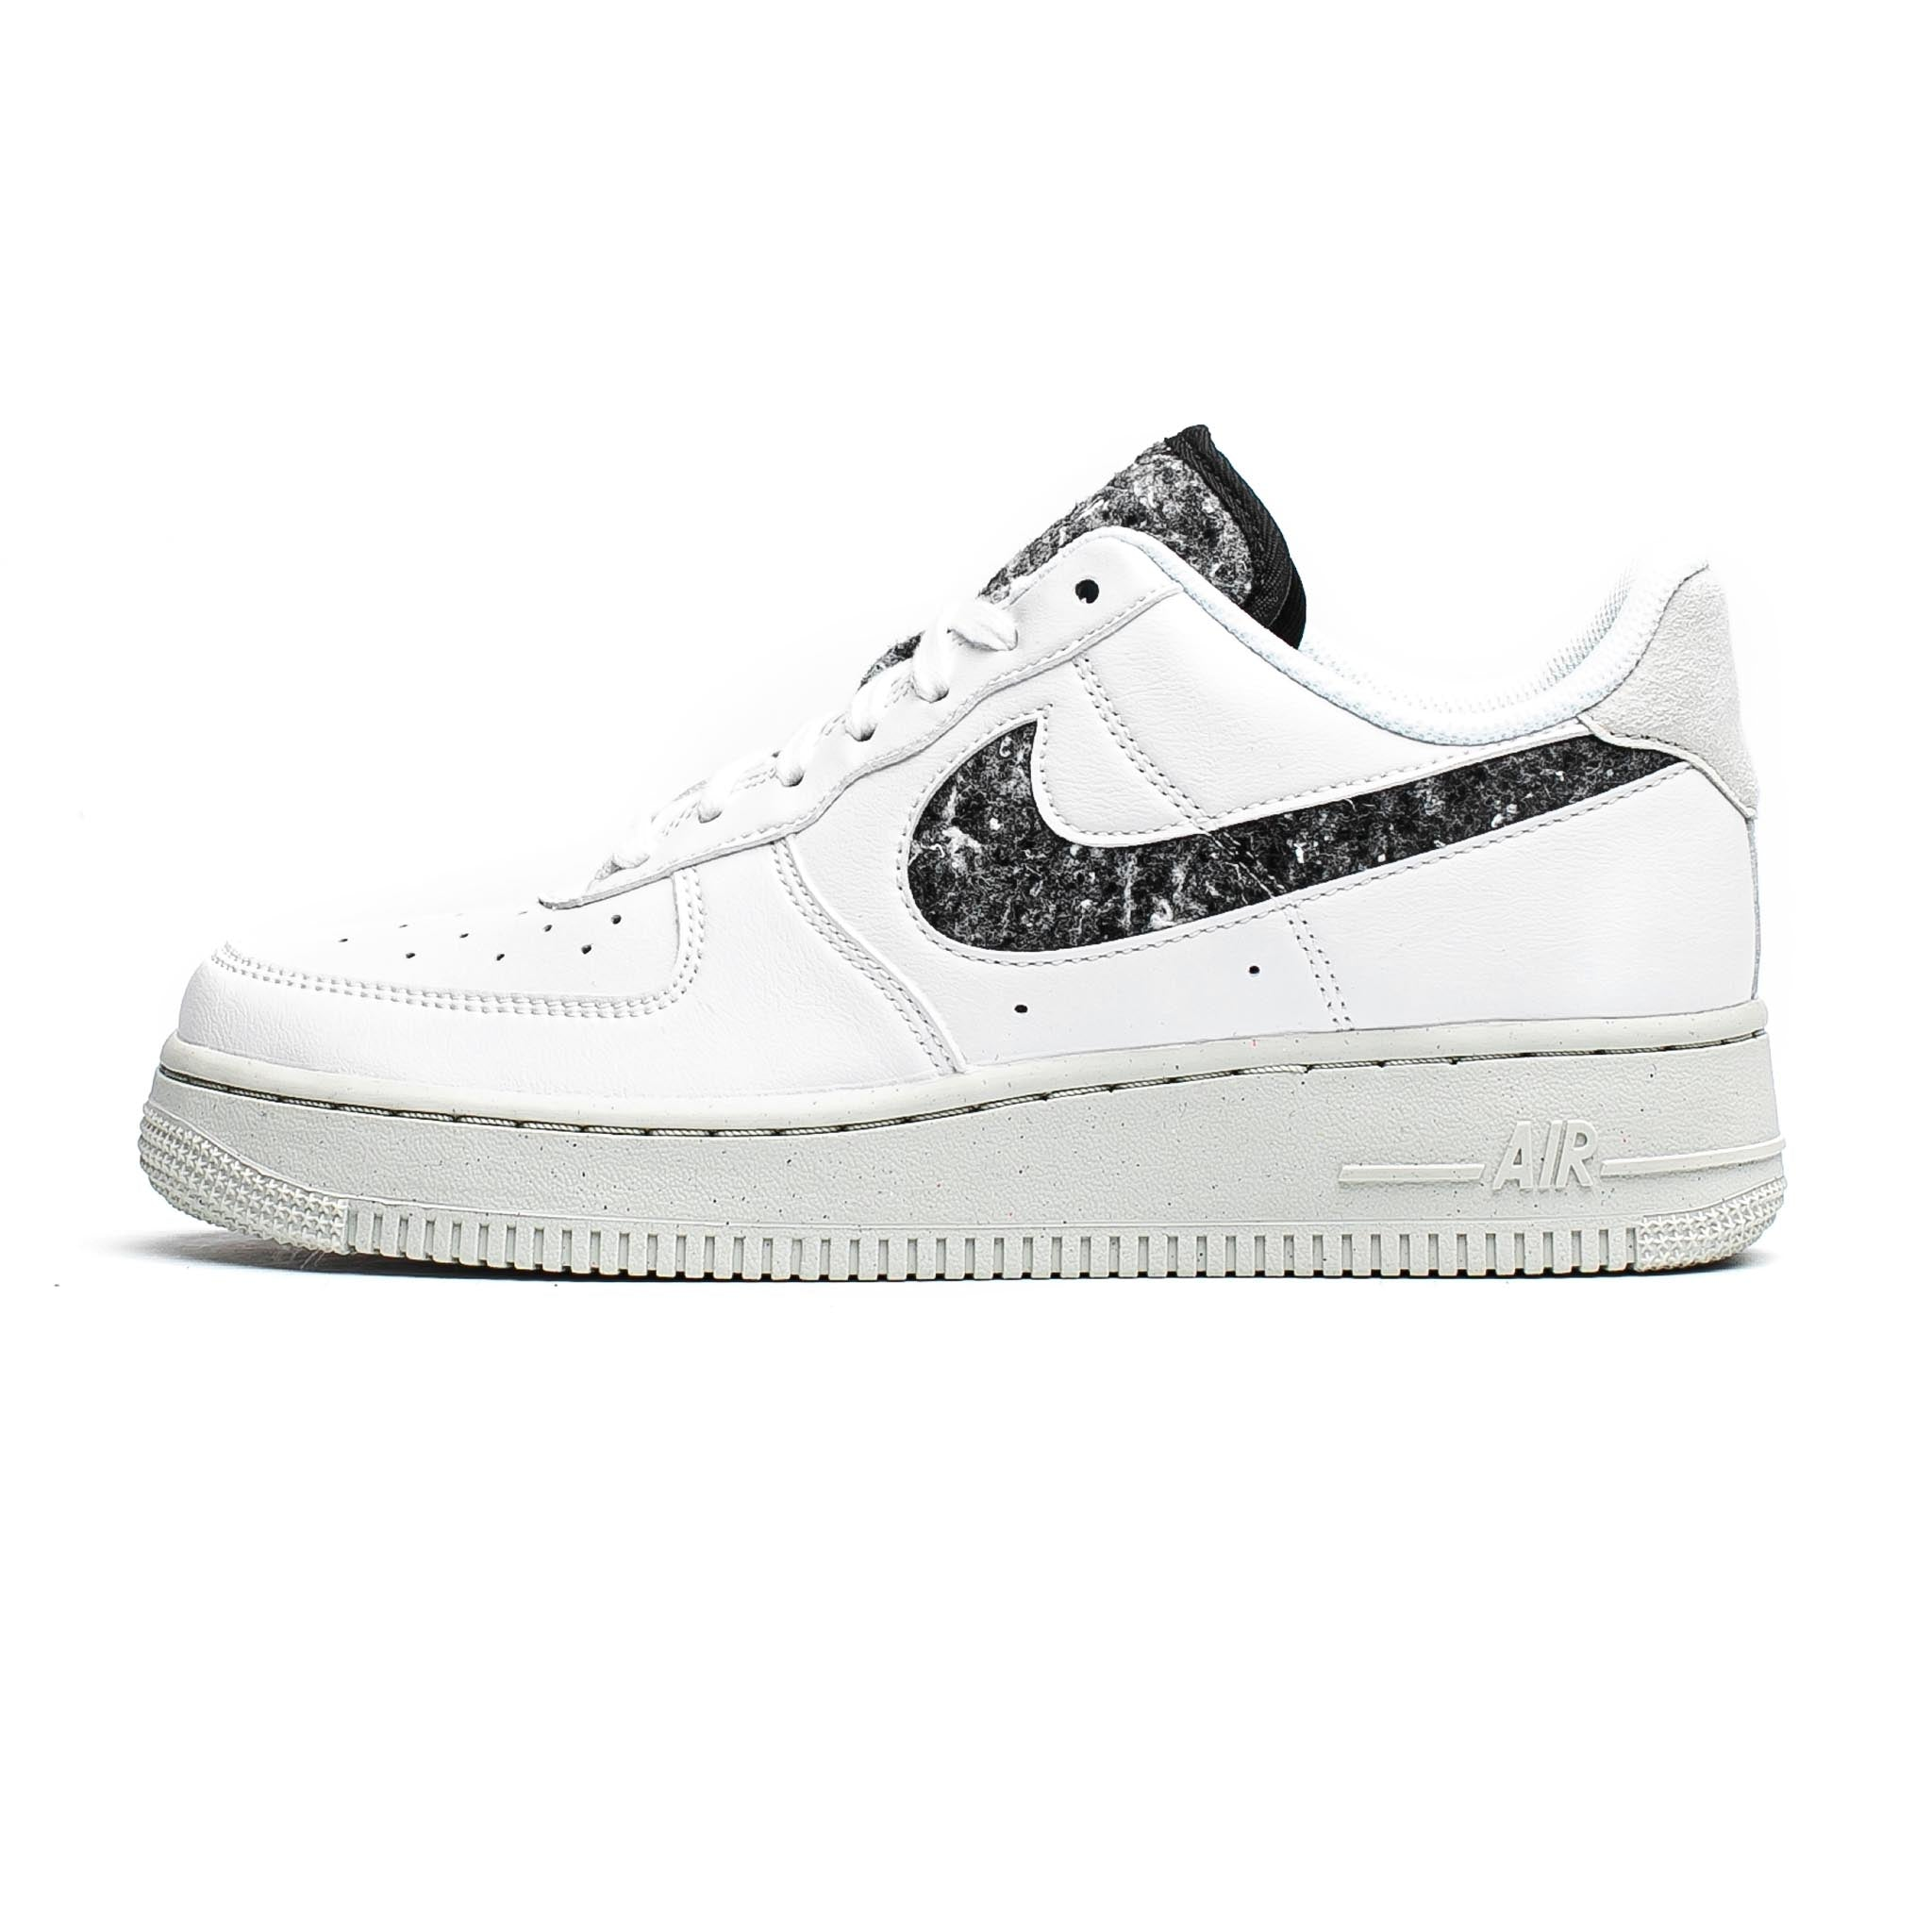 Nike Air Force 1 '07 SE 'Recycled Wool' White/Light Bone